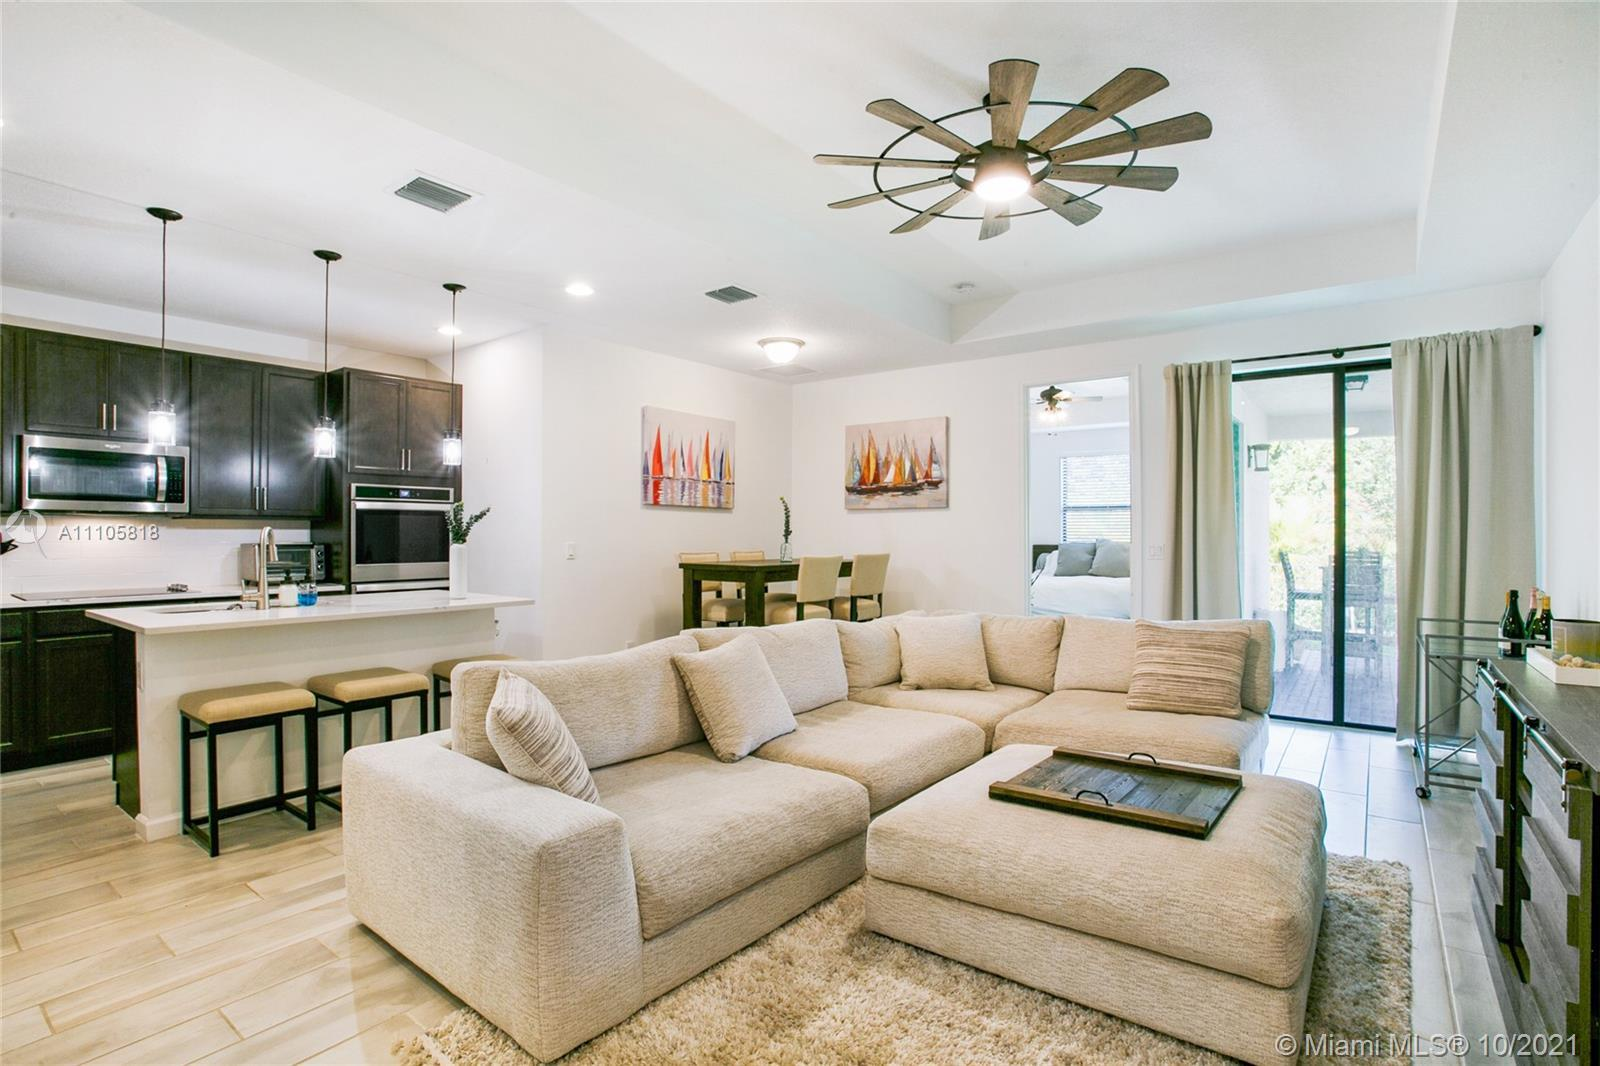 Welcome to Vantage at Palm Aire, a new gated Single Family Home development located in Pompano Beach